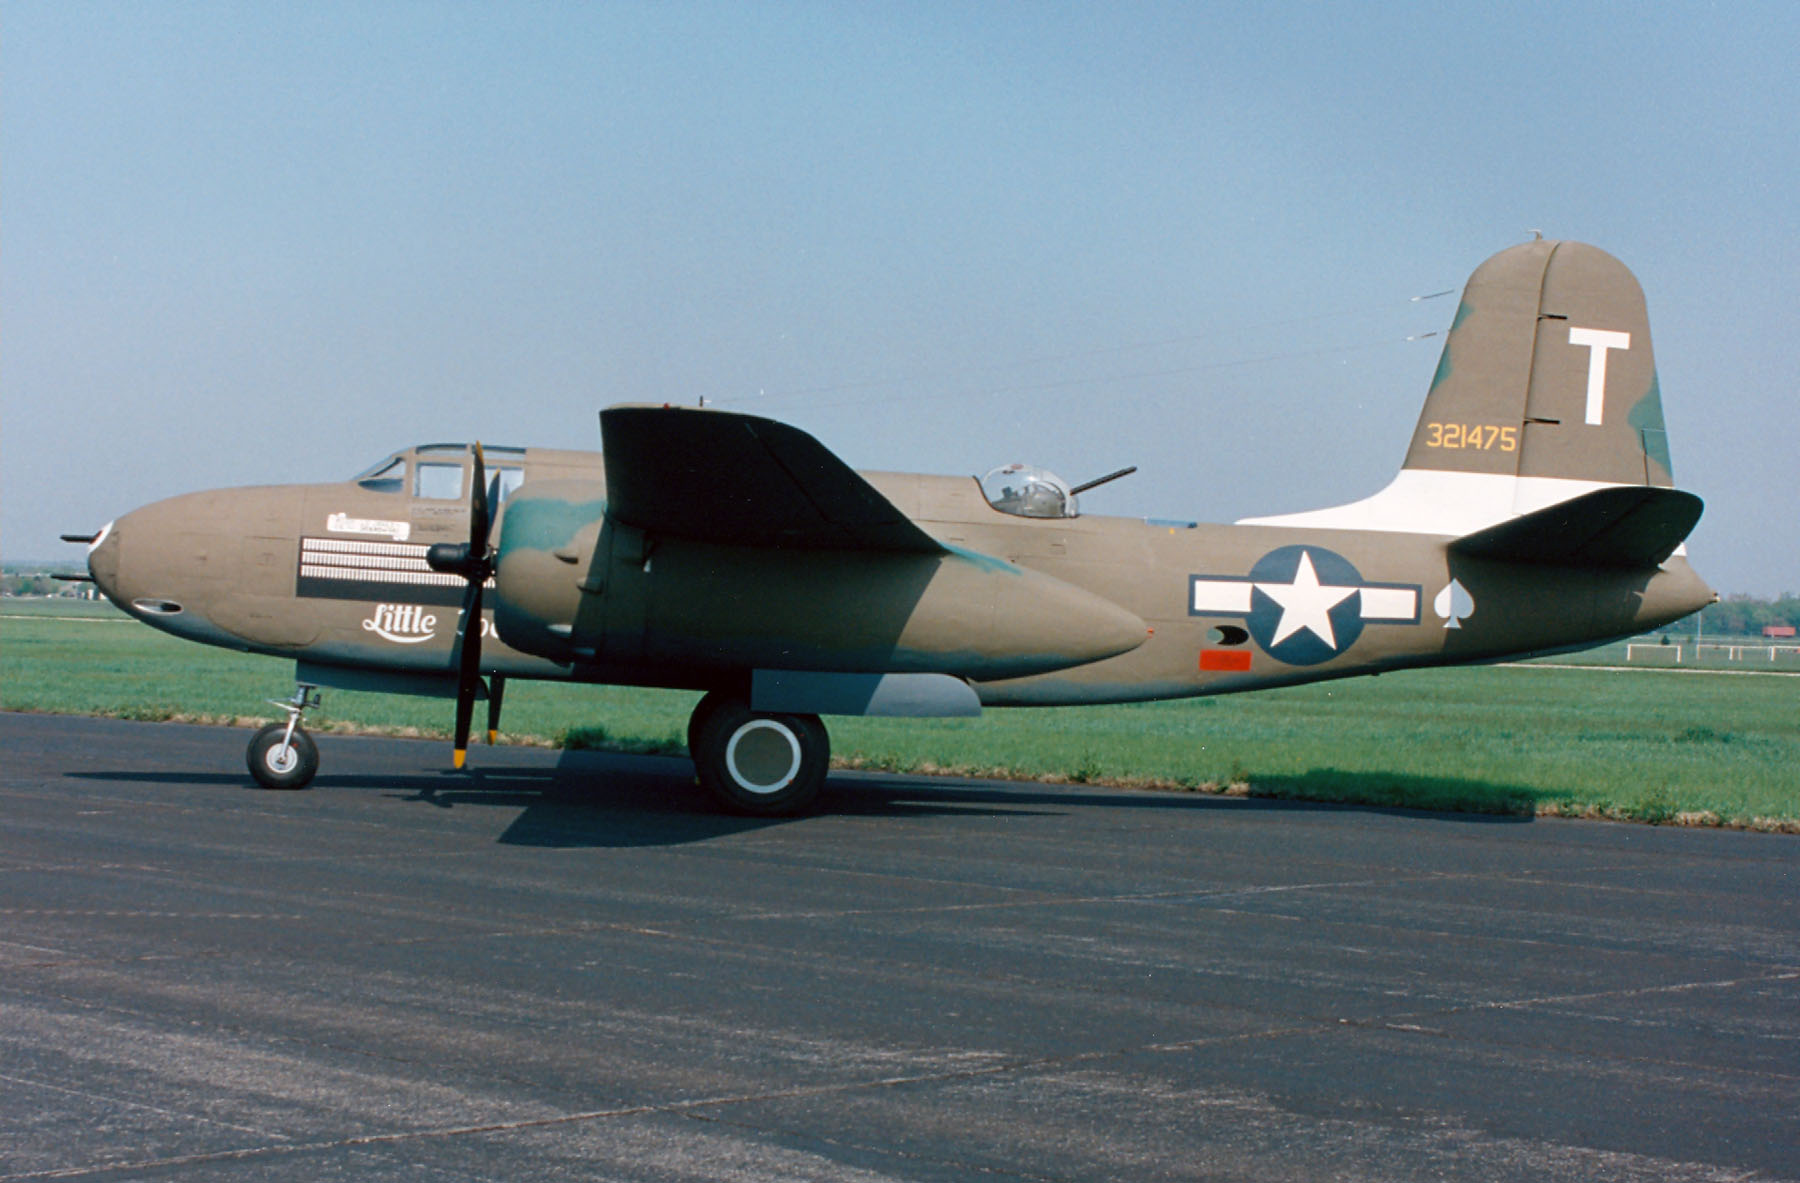 THIS IS A DOUGLAS A-20G HAVOC AT THE NATIONAL MUSEUM OF THE UNITED STATES AIR FORCE IN DAYTON, OHIO.  THE BANKERS LIFE AND CASUALTY COMPANY, OF CHICAGO, ILLINOIS, DONATED THIS PLANE TO THE MUSEUM IN 1961.    PHOTO COURTESY OF THE U.S. AIR FORCE.